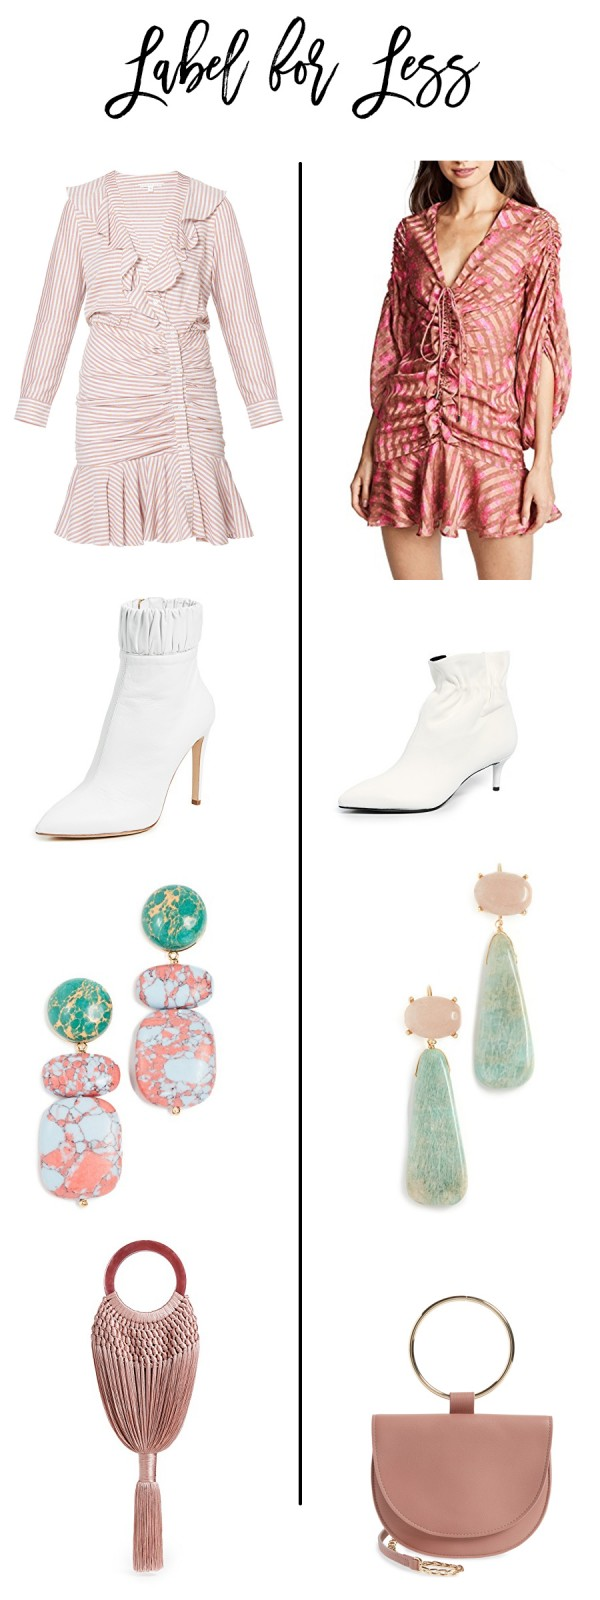 Label for Less NYFW Outfit Inspiration, Veronica Beard, Shopbop, Cult Gaia, Have Need Want